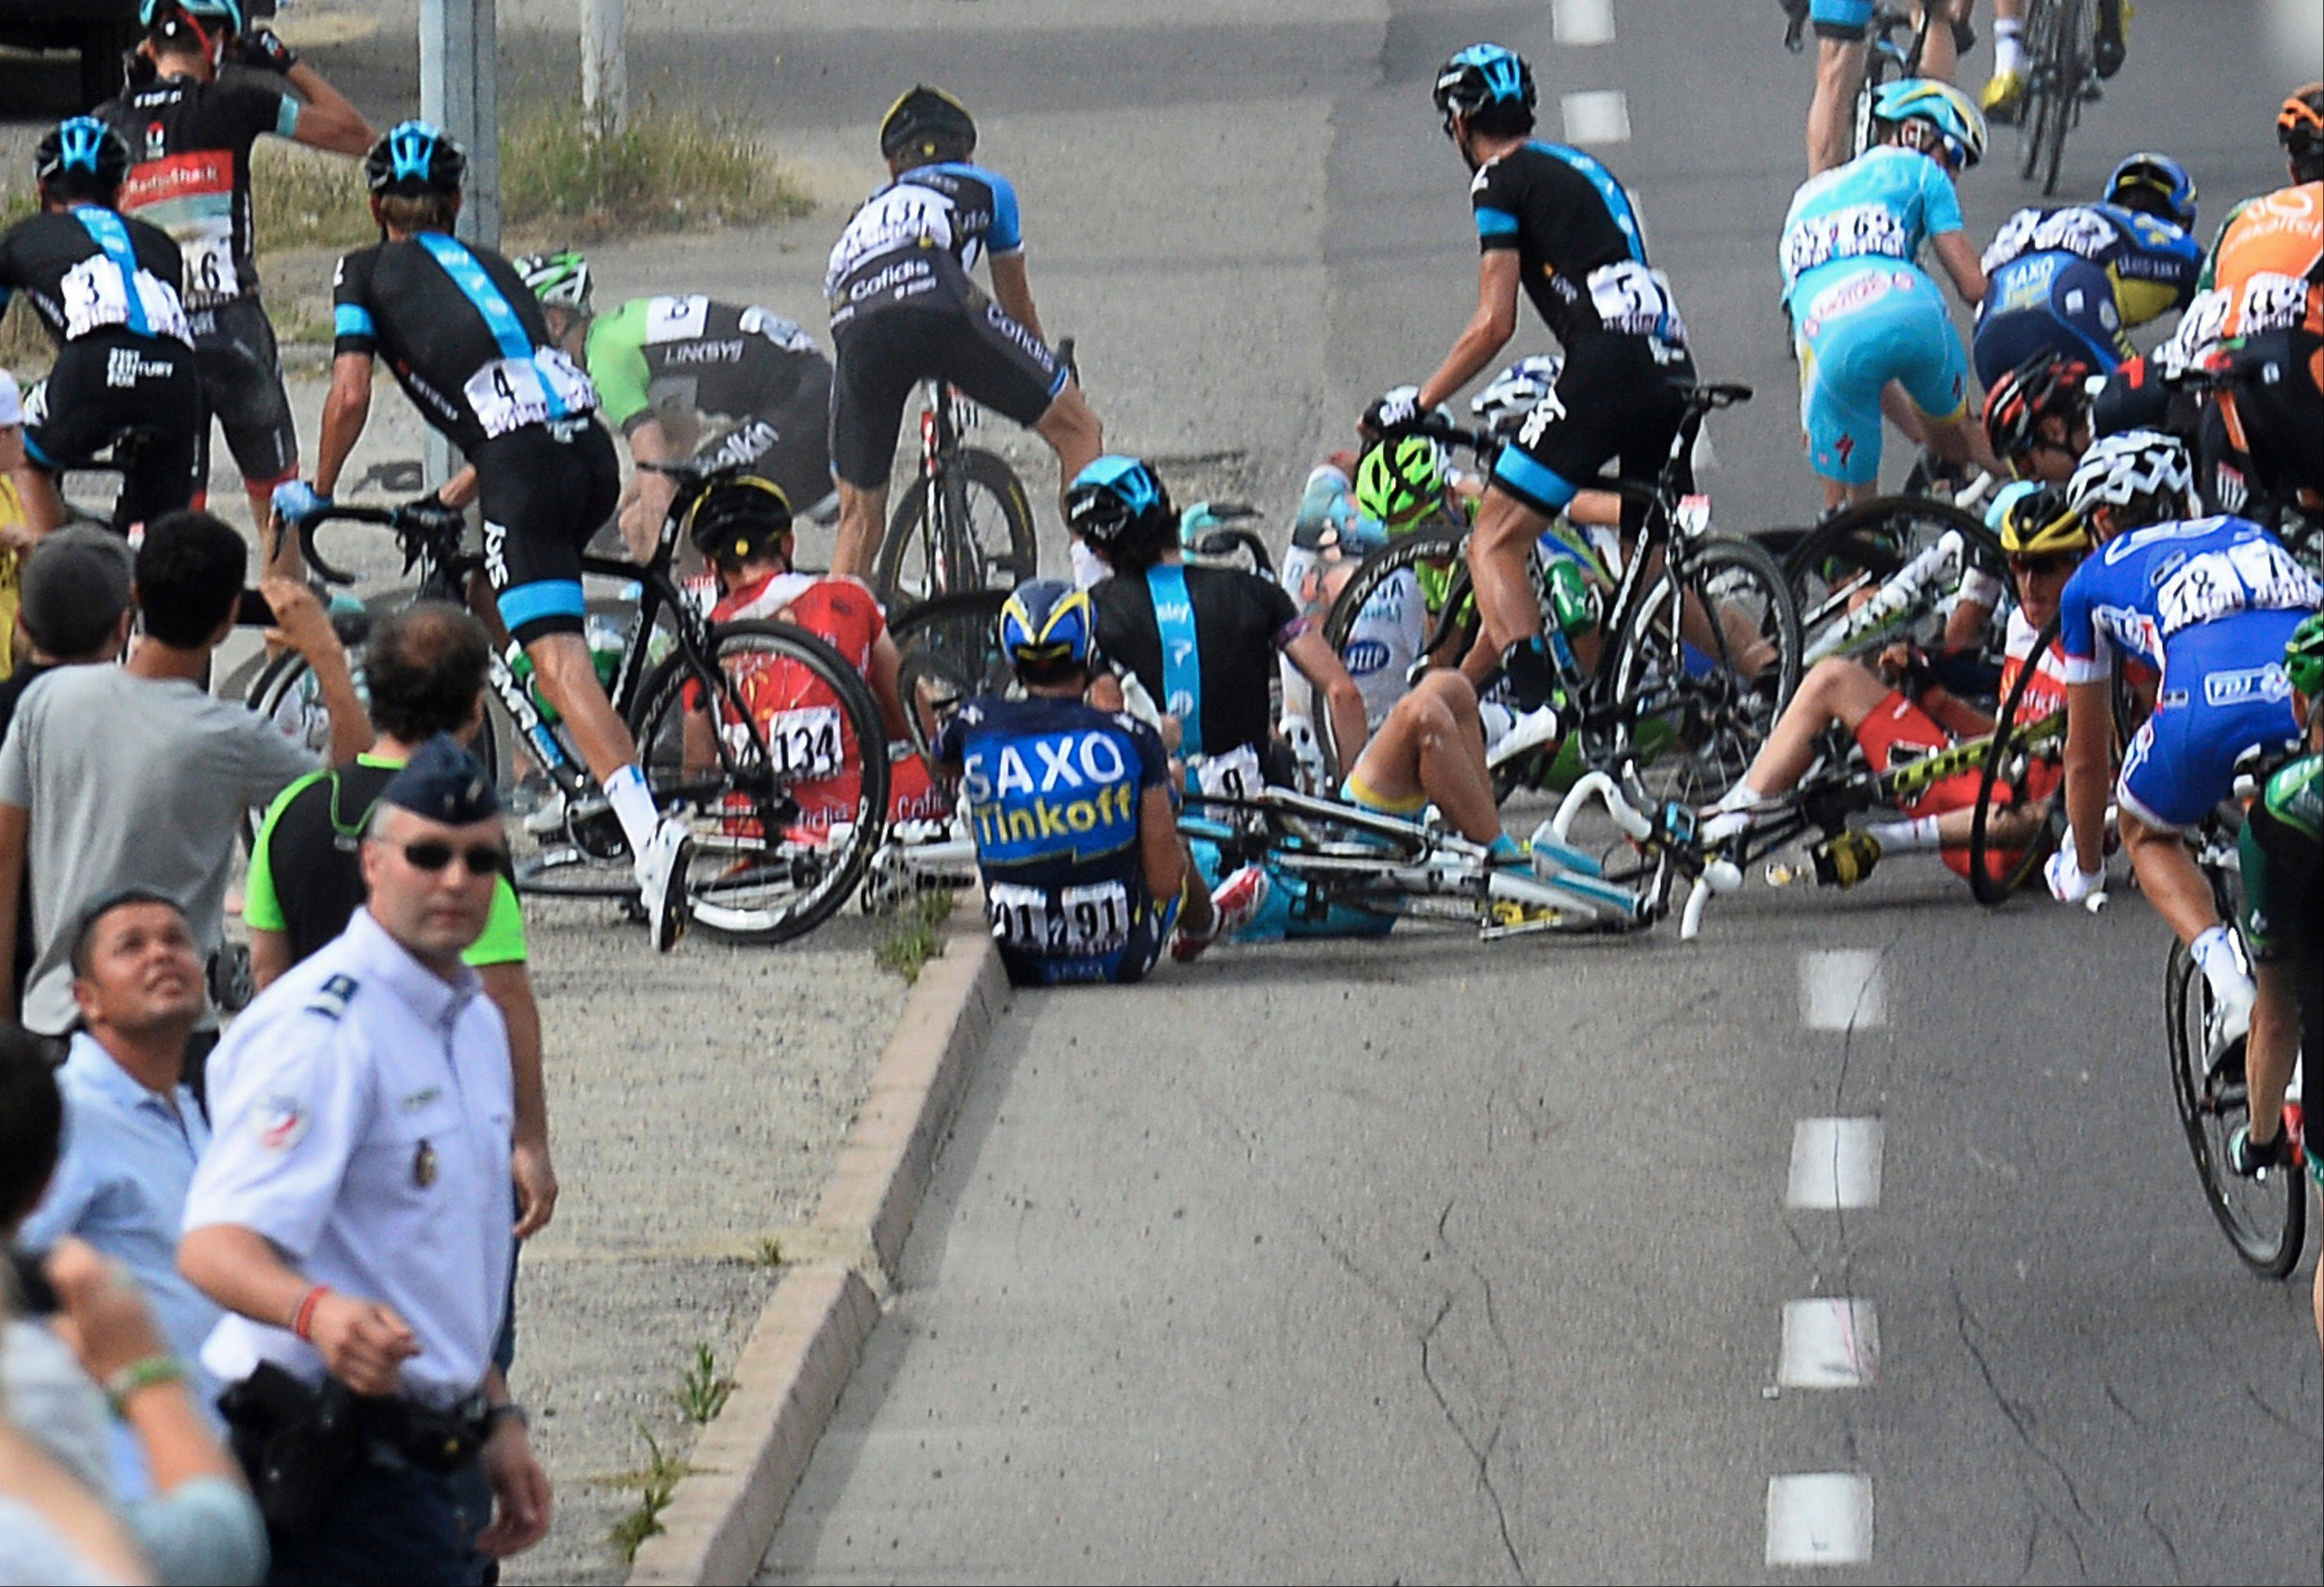 Alberto Contador of Spain, center with number 91, sits on the road after a group of riders crashed during the first stage of the Tour de France cycling race over 213 kilometers (133 miles) with start in Porto Vecchio and finish in Bastia, Corsica island, France, Saturday June 29, 2013. (AP Photo/Stephane Mantey/L'Equipe, POOL)